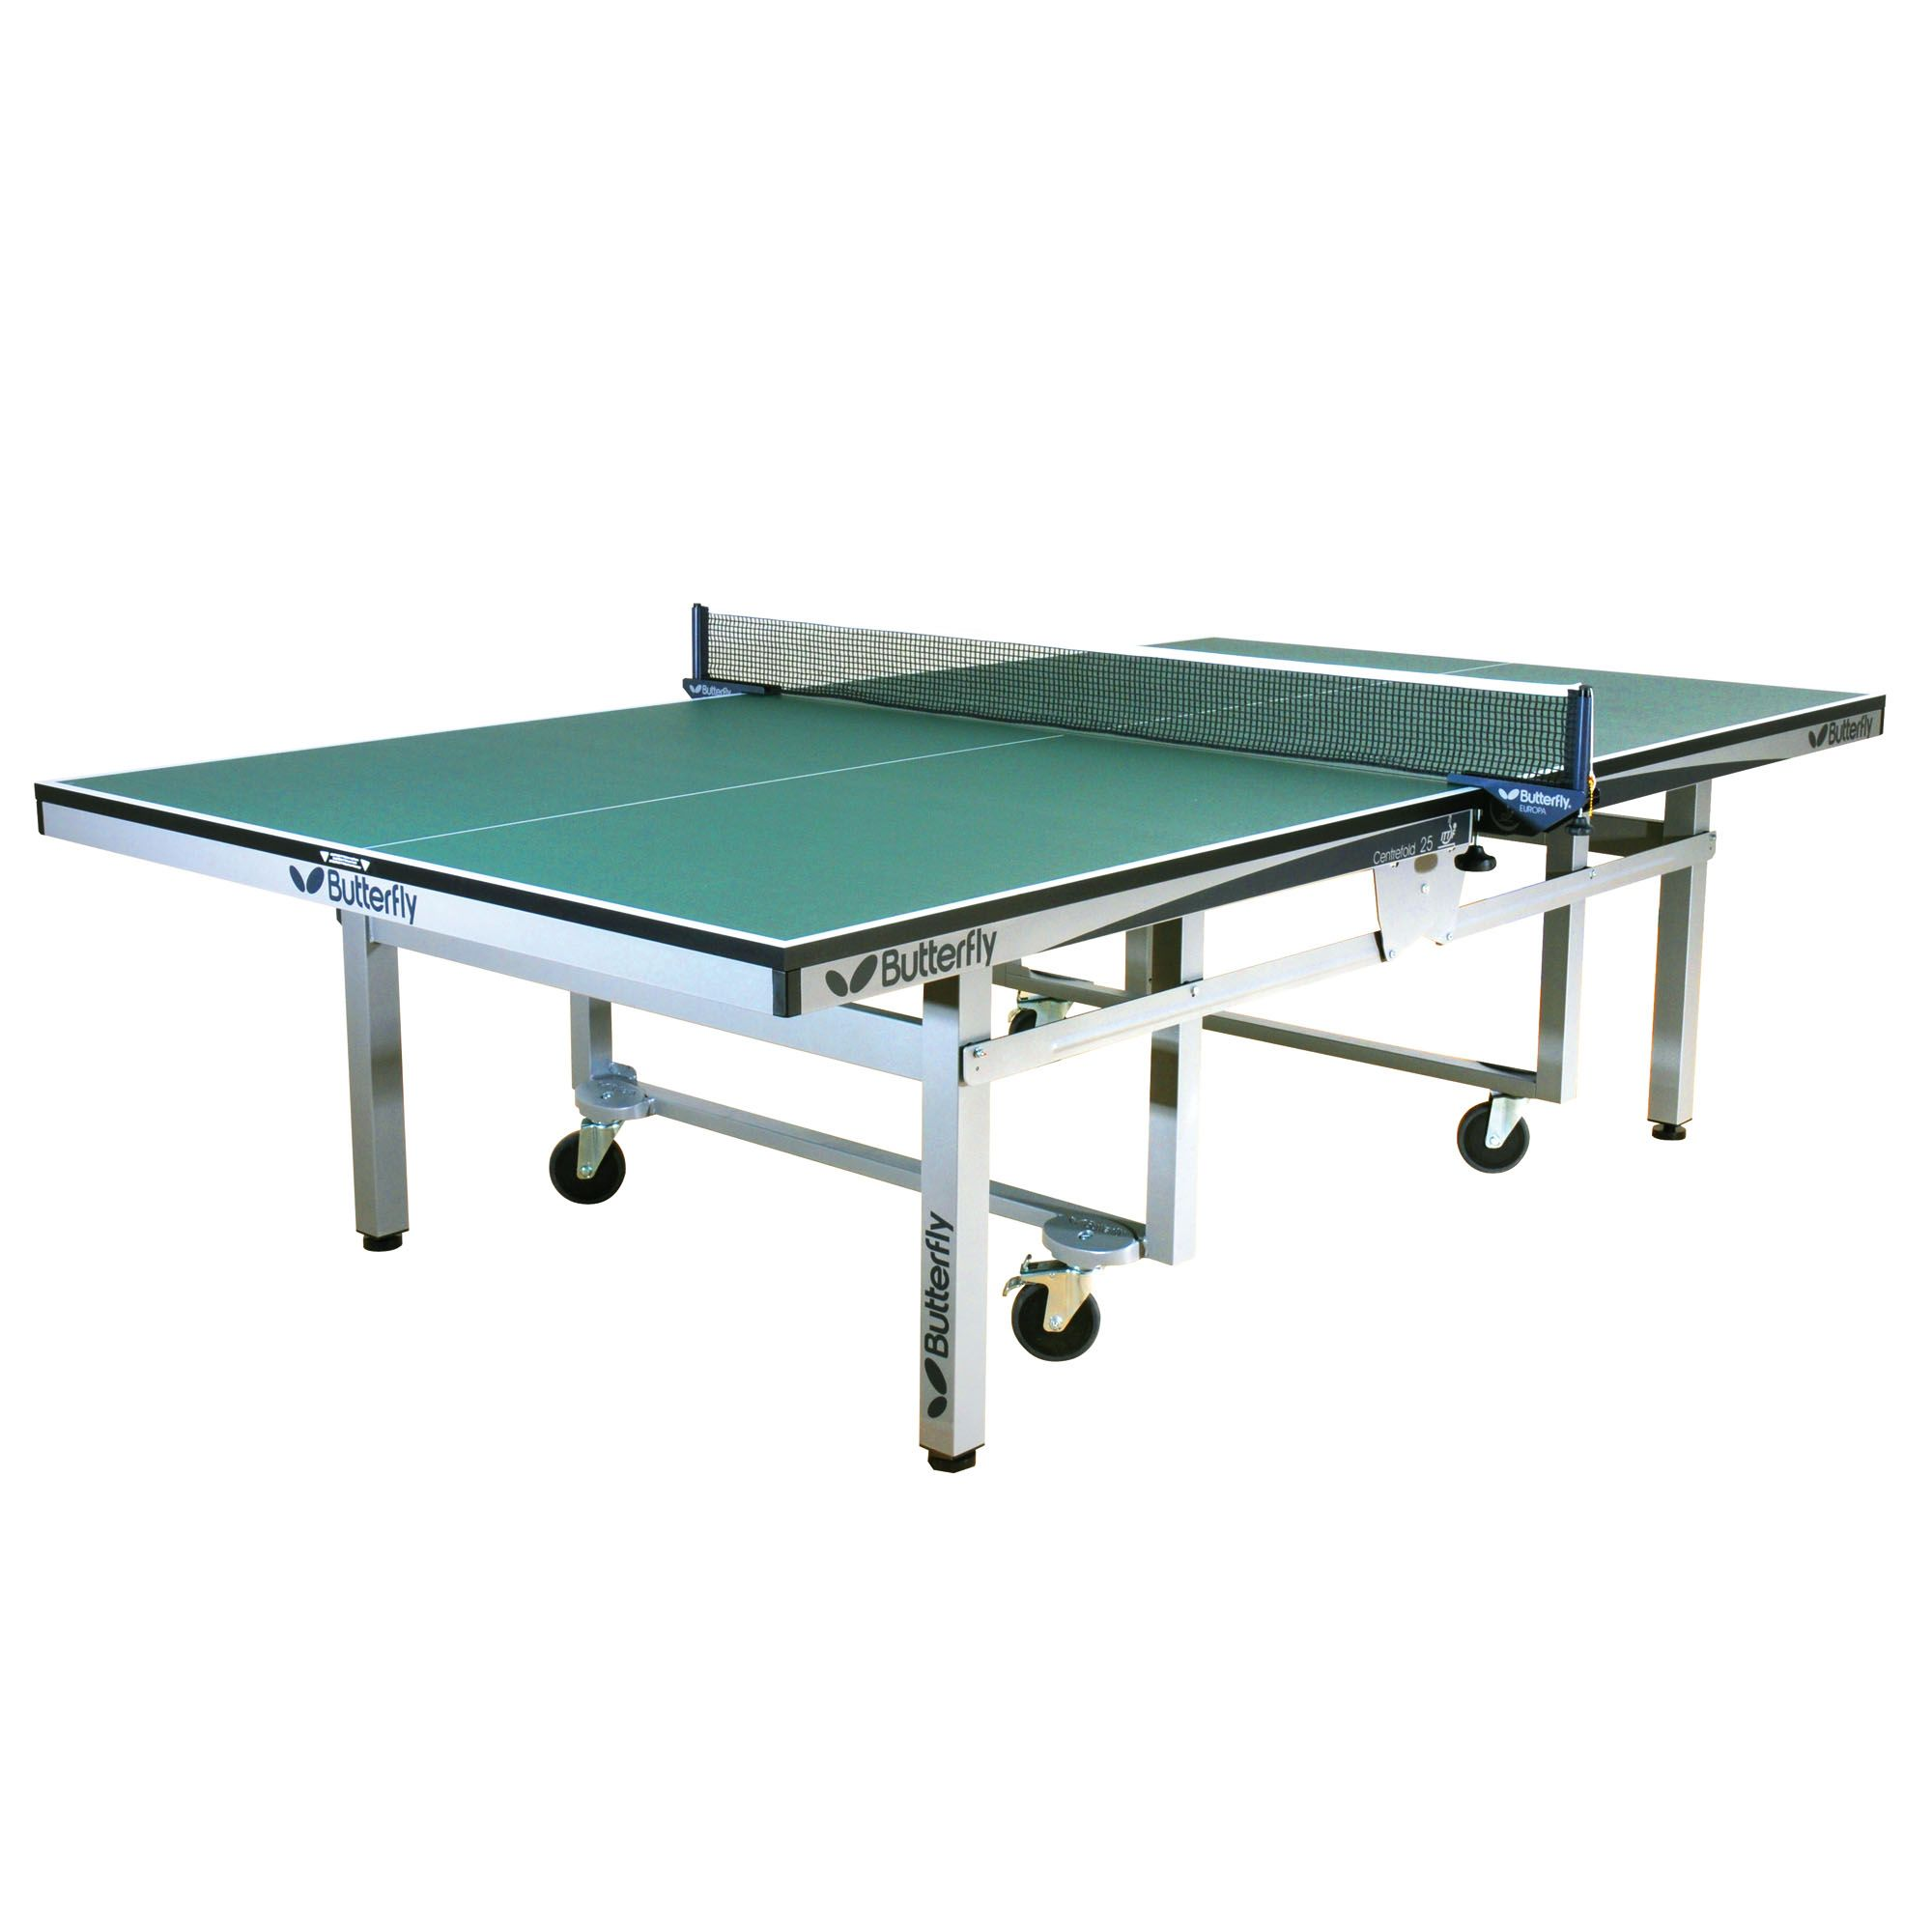 Butterfly centrefold rollaway indoor table tennis table for Table tennis